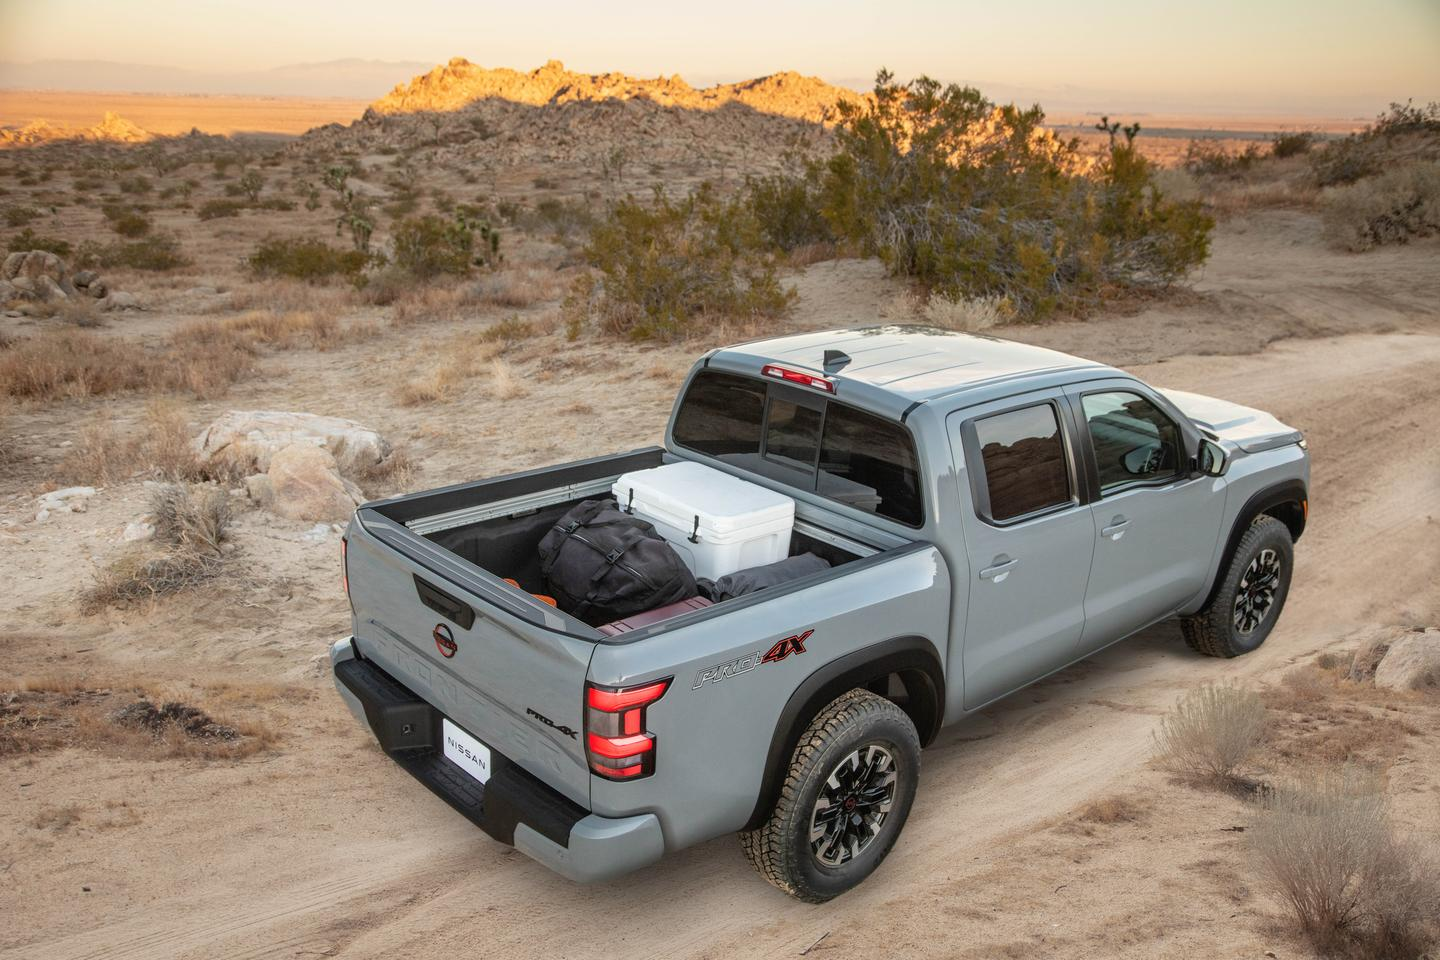 Most of the goodness of the previous-gen Frontier is still present in the new 2022 Frontier's bed, including the available sliding rails and spray-on liner